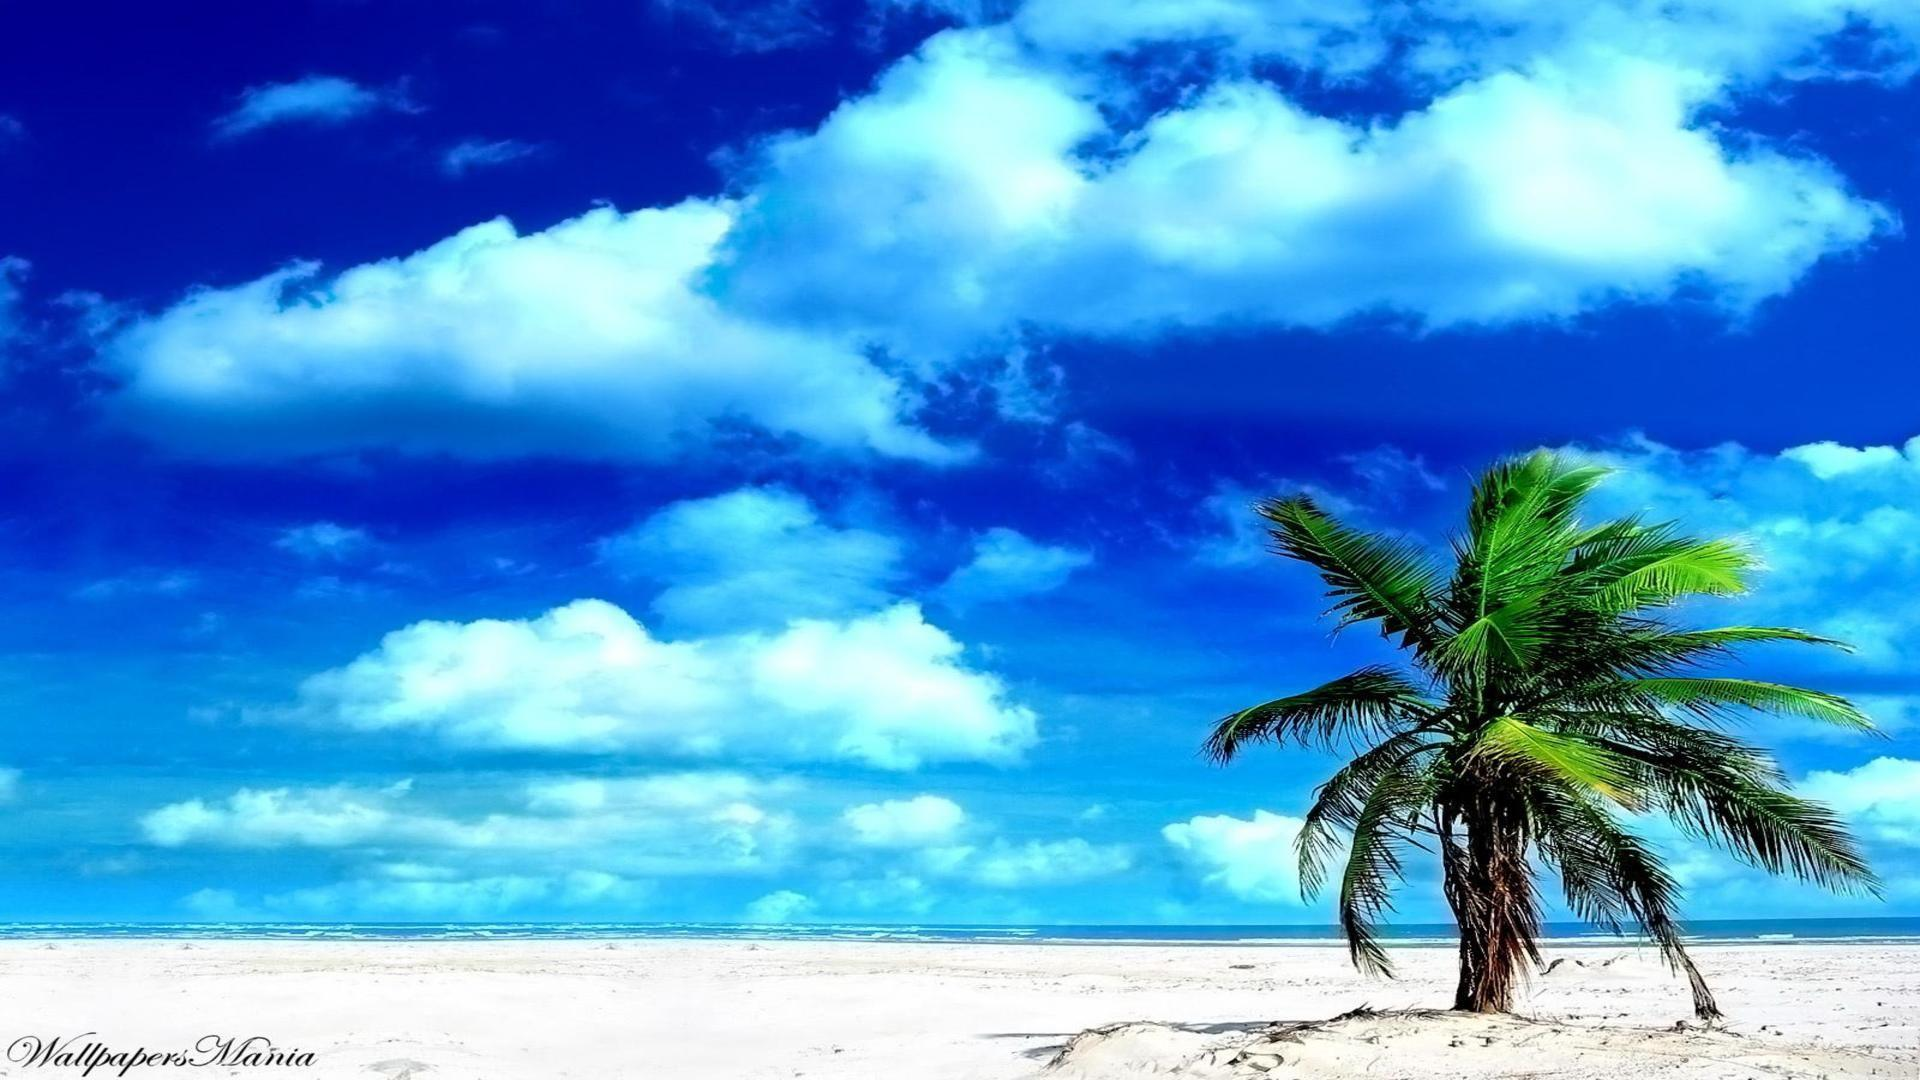 Tropical Backgrounds hd HD wallpaper background 1920x1080